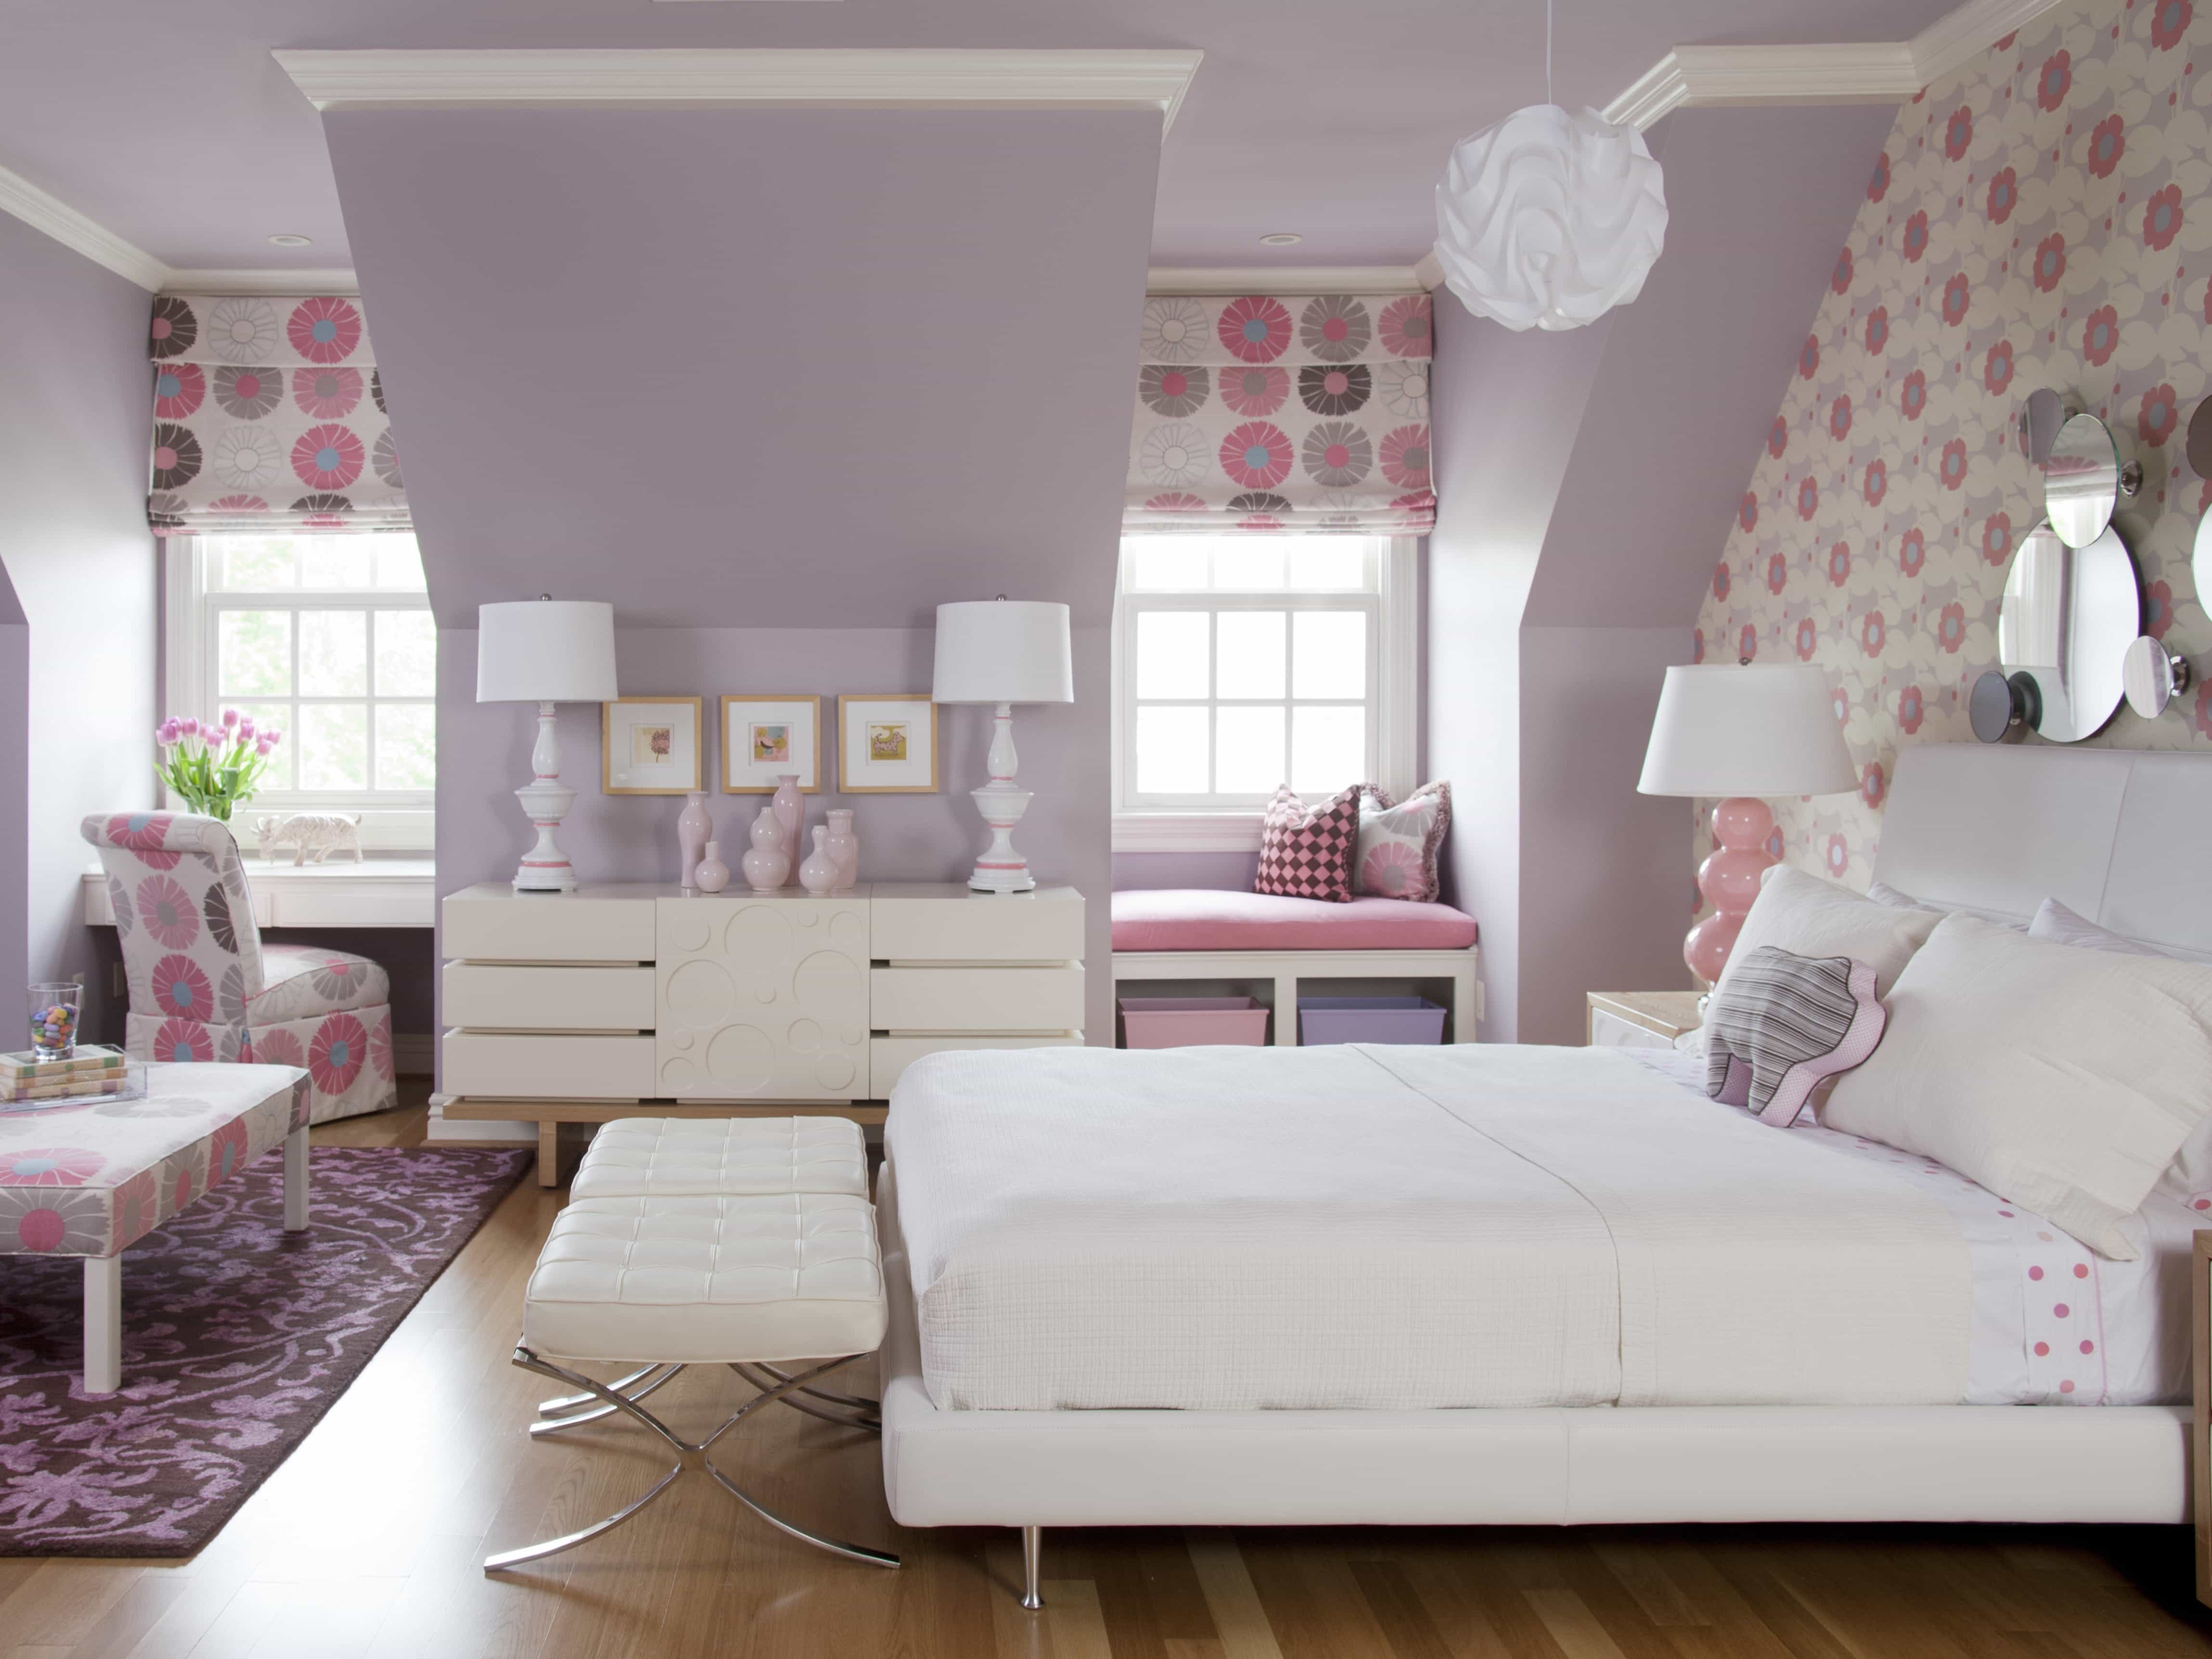 Transitional Lavender And White Girls Bedroom Decoration (Image 25 of 28)